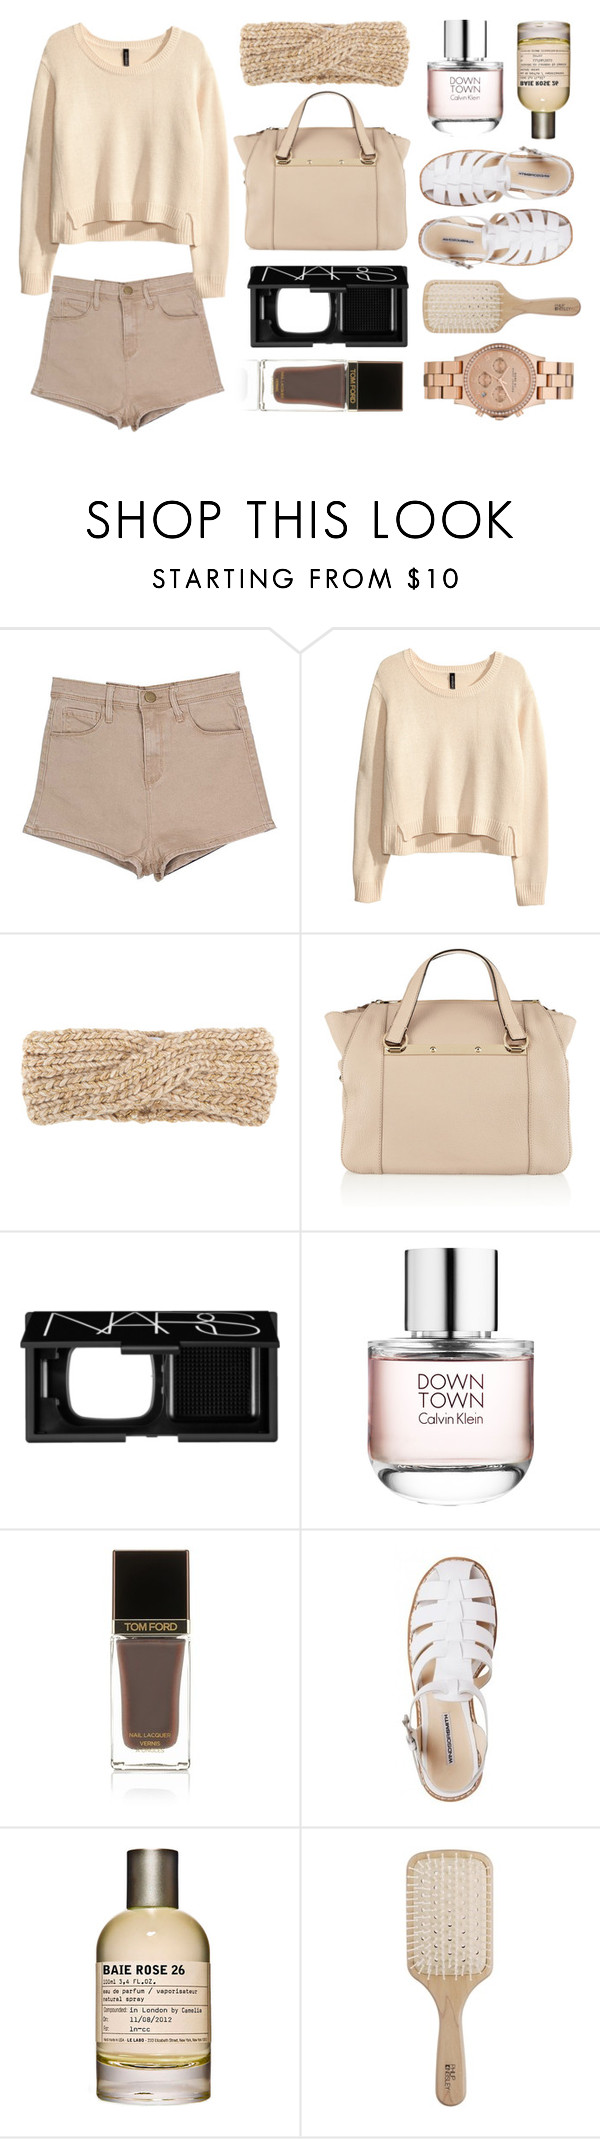 """you're the one i love"" by fashion-forever22 ❤ liked on Polyvore featuring H&M, Eugenia Kim, Chloé, NARS Cosmetics, Calvin Klein, Tom Ford, Le Labo, Philip Kingsley and Marc by Marc Jacobs"